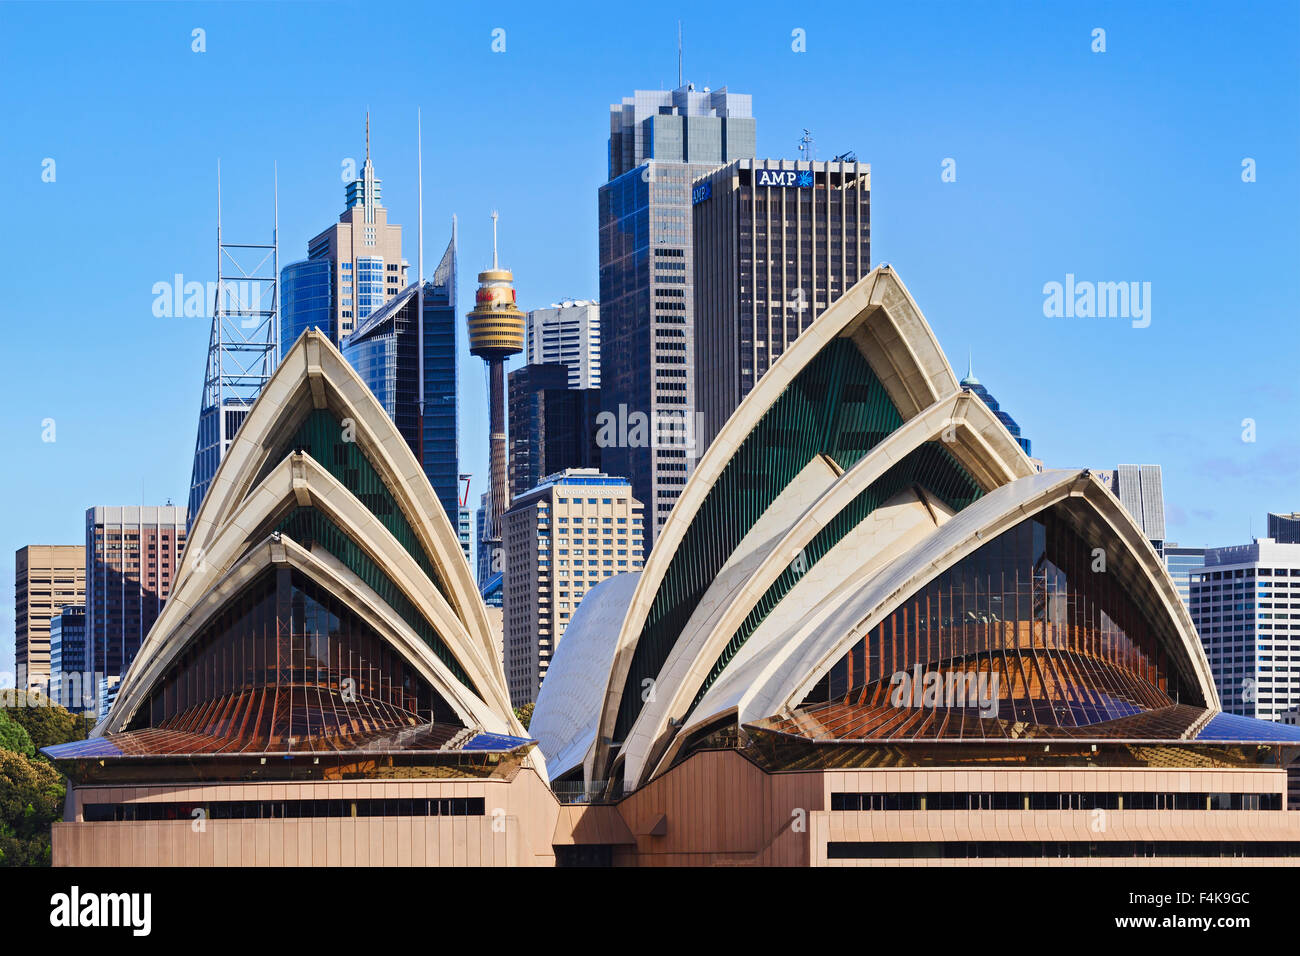 SYDNEY - May 10, 2015: The Sydney Opera House, viewed from Harbour in Sydney, Australia on May 10, 2015. Stock Photo